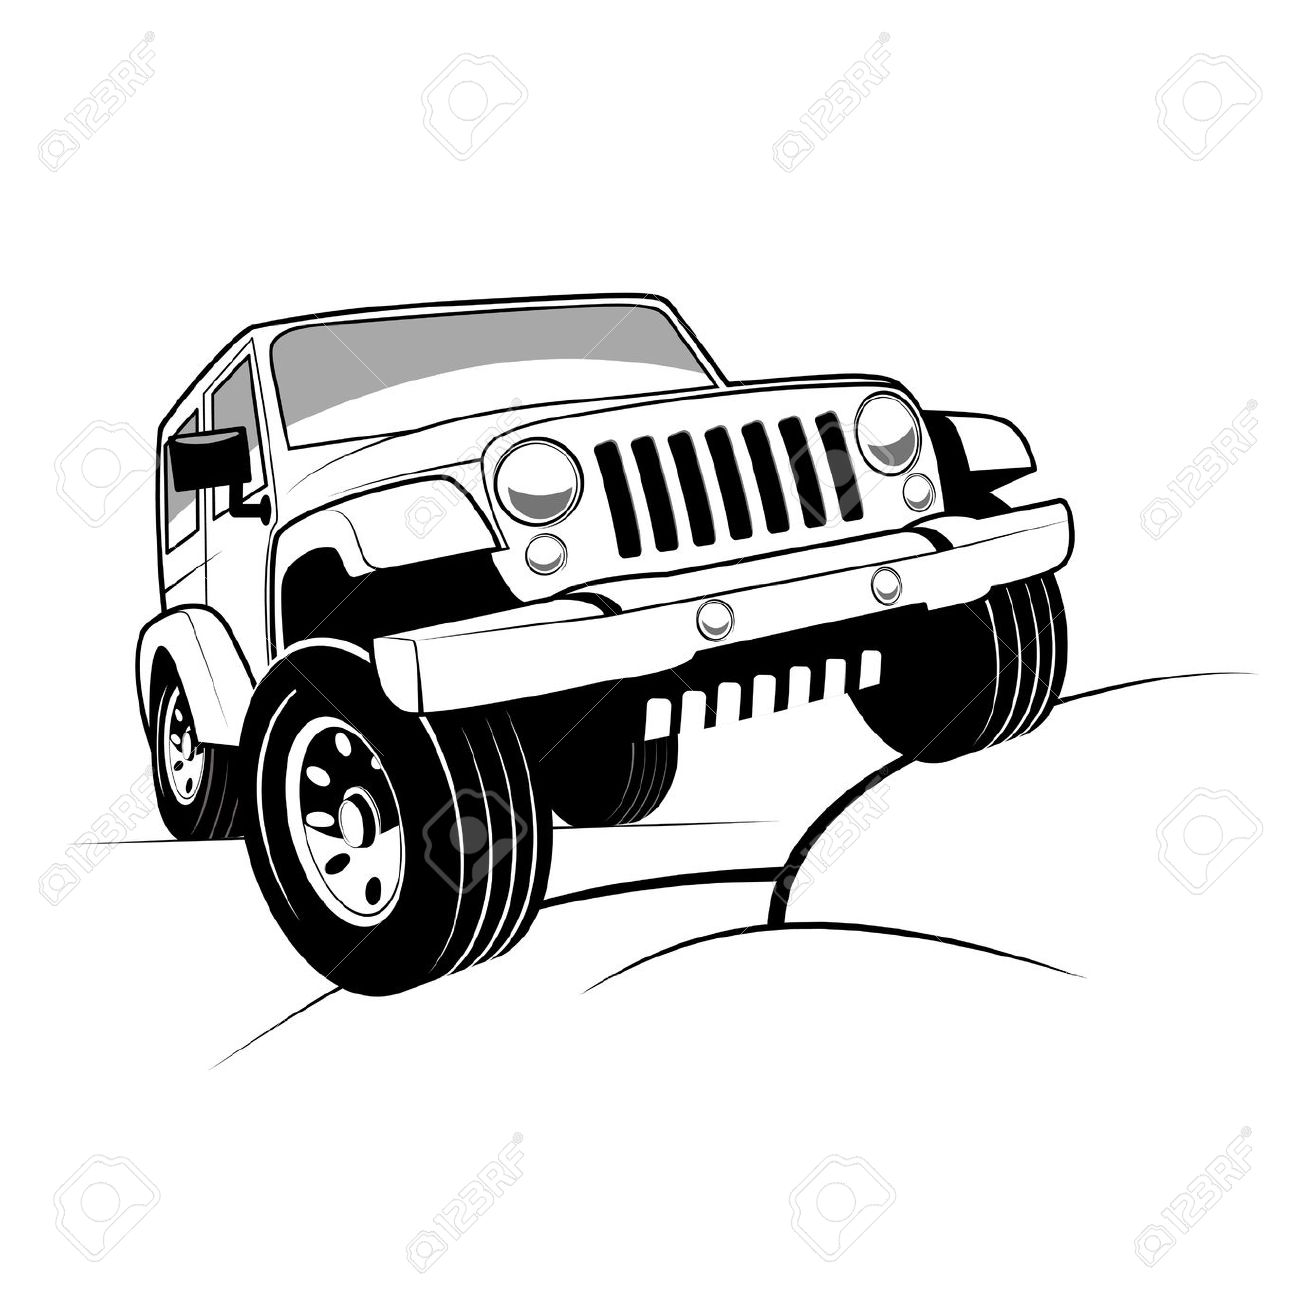 Jeep off road clipart.